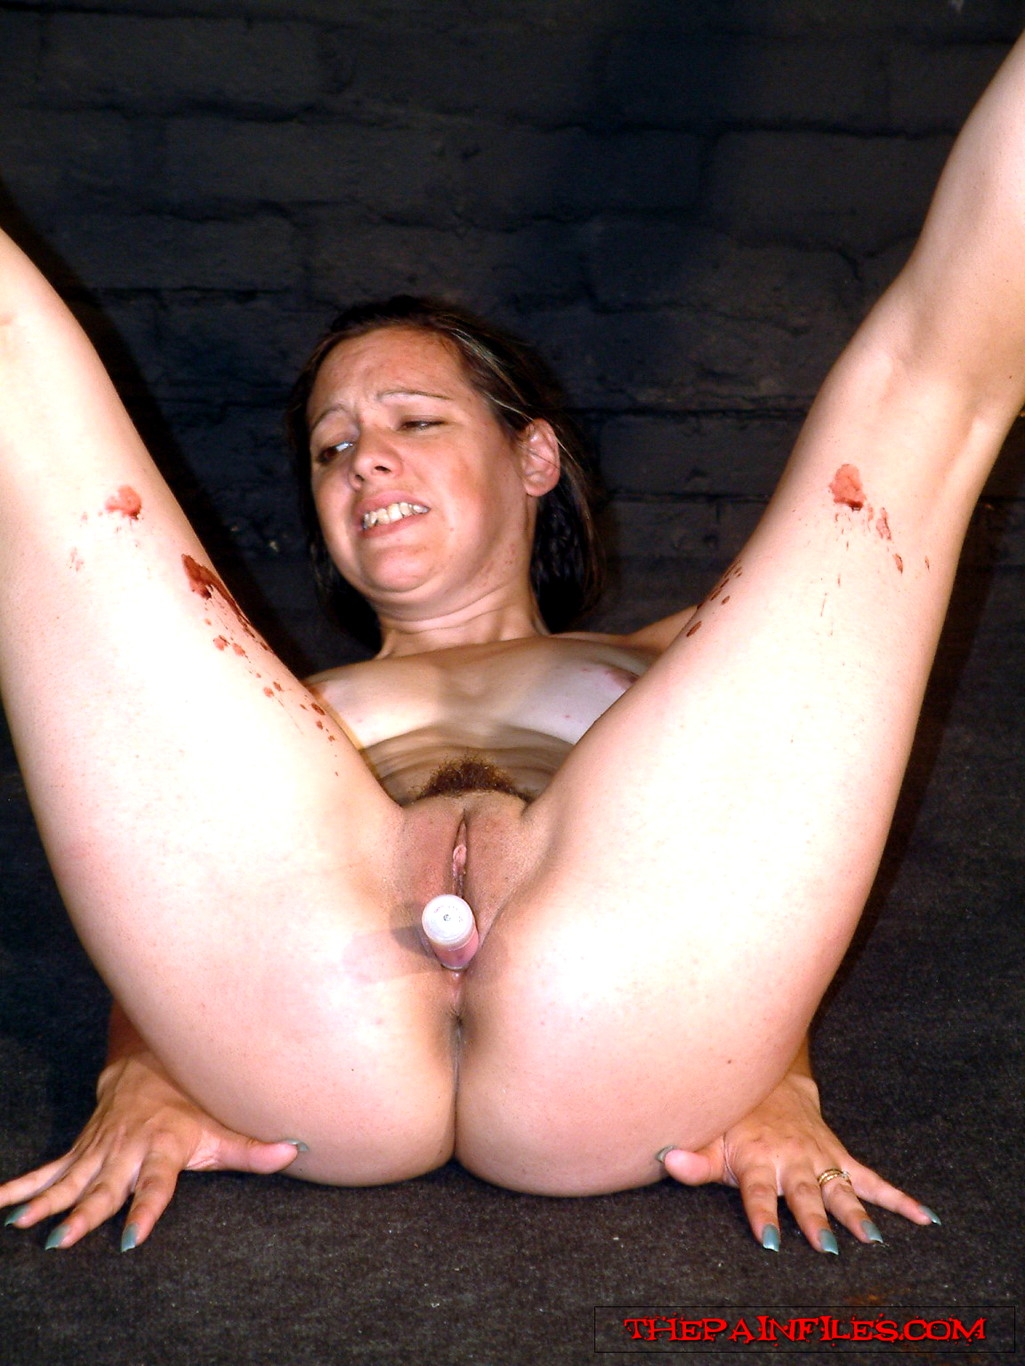 Bisset brown pussy whipping from husband cumshot big